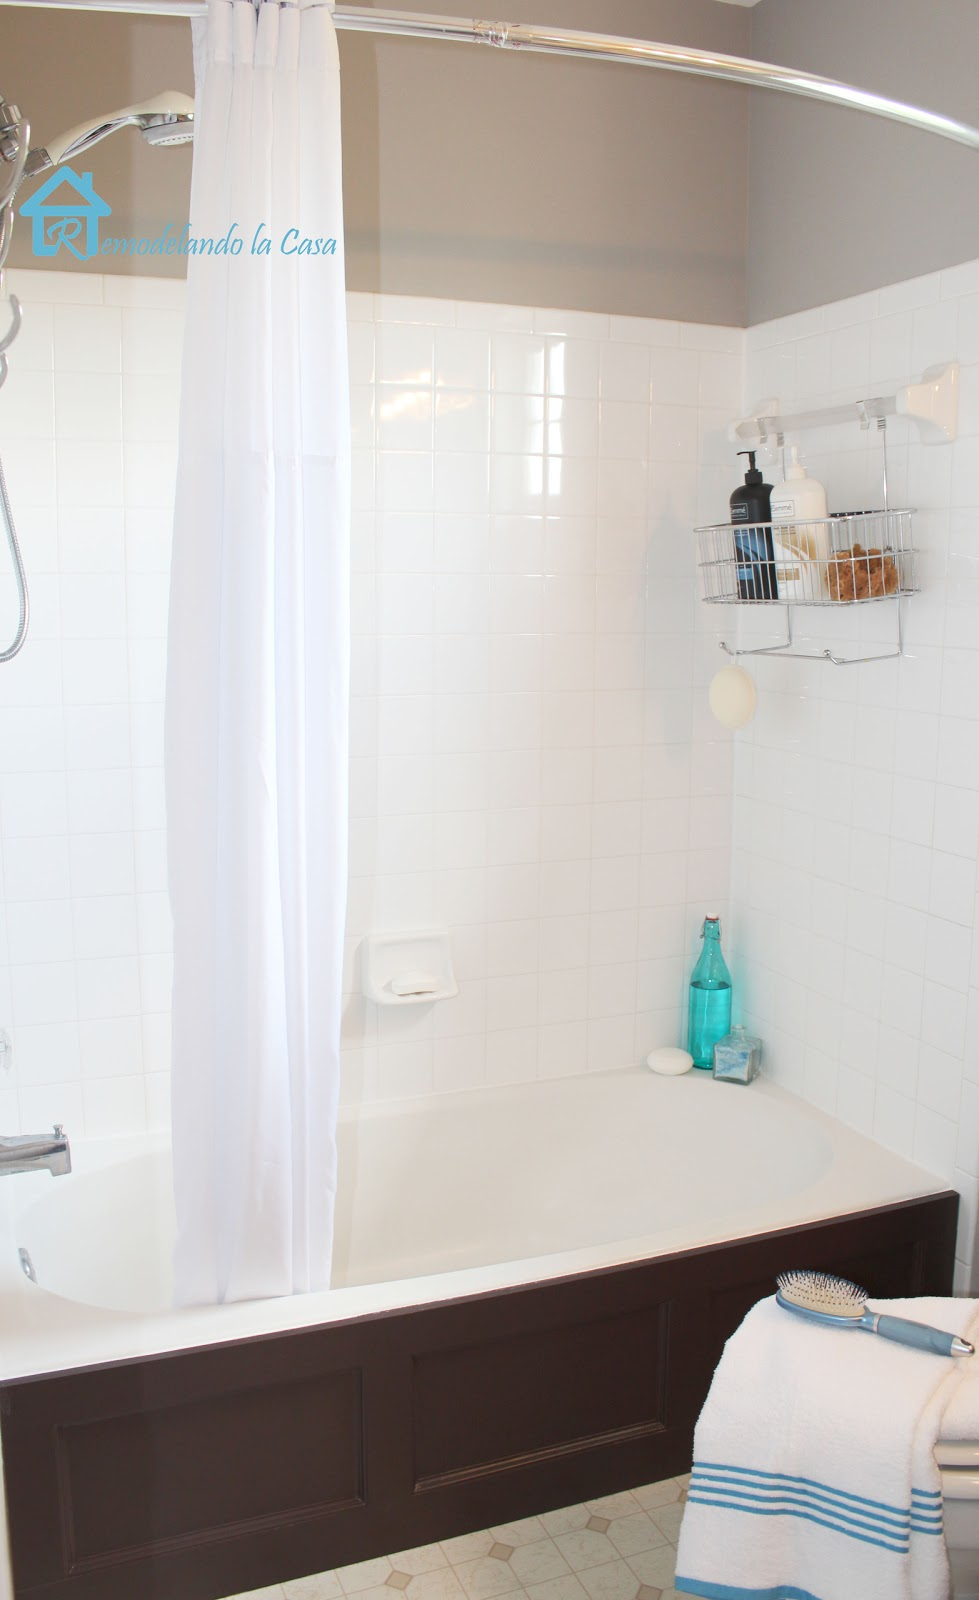 I Also Love The Look Of Panels, Thatu0027s Why I Decided To Give A Plain Bathtub  A Dressed Up Treatment.